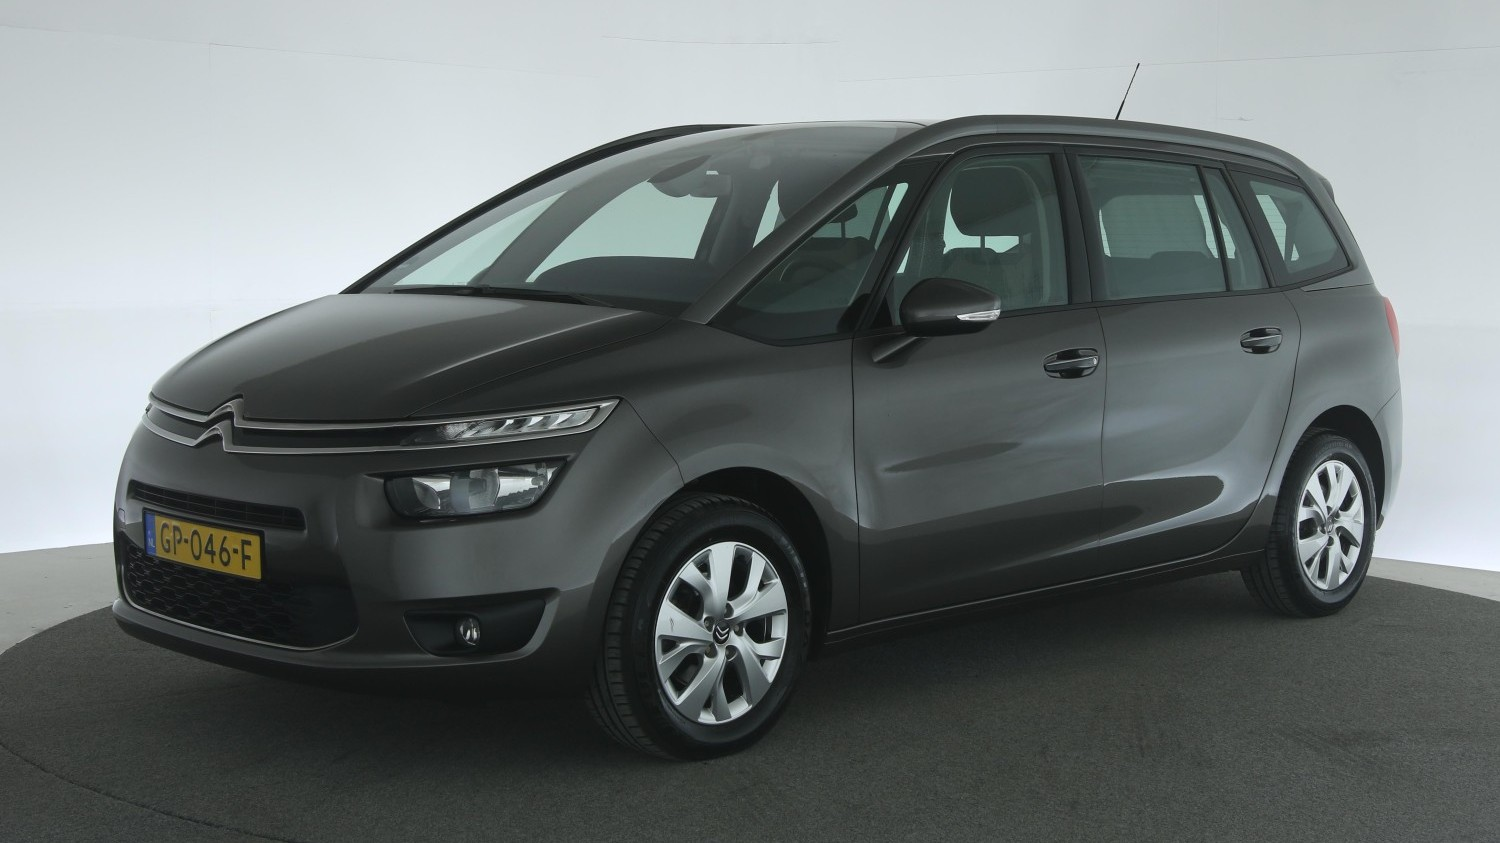 Citroen Grand C4 Picasso MPV 2015 GP-046-F 1